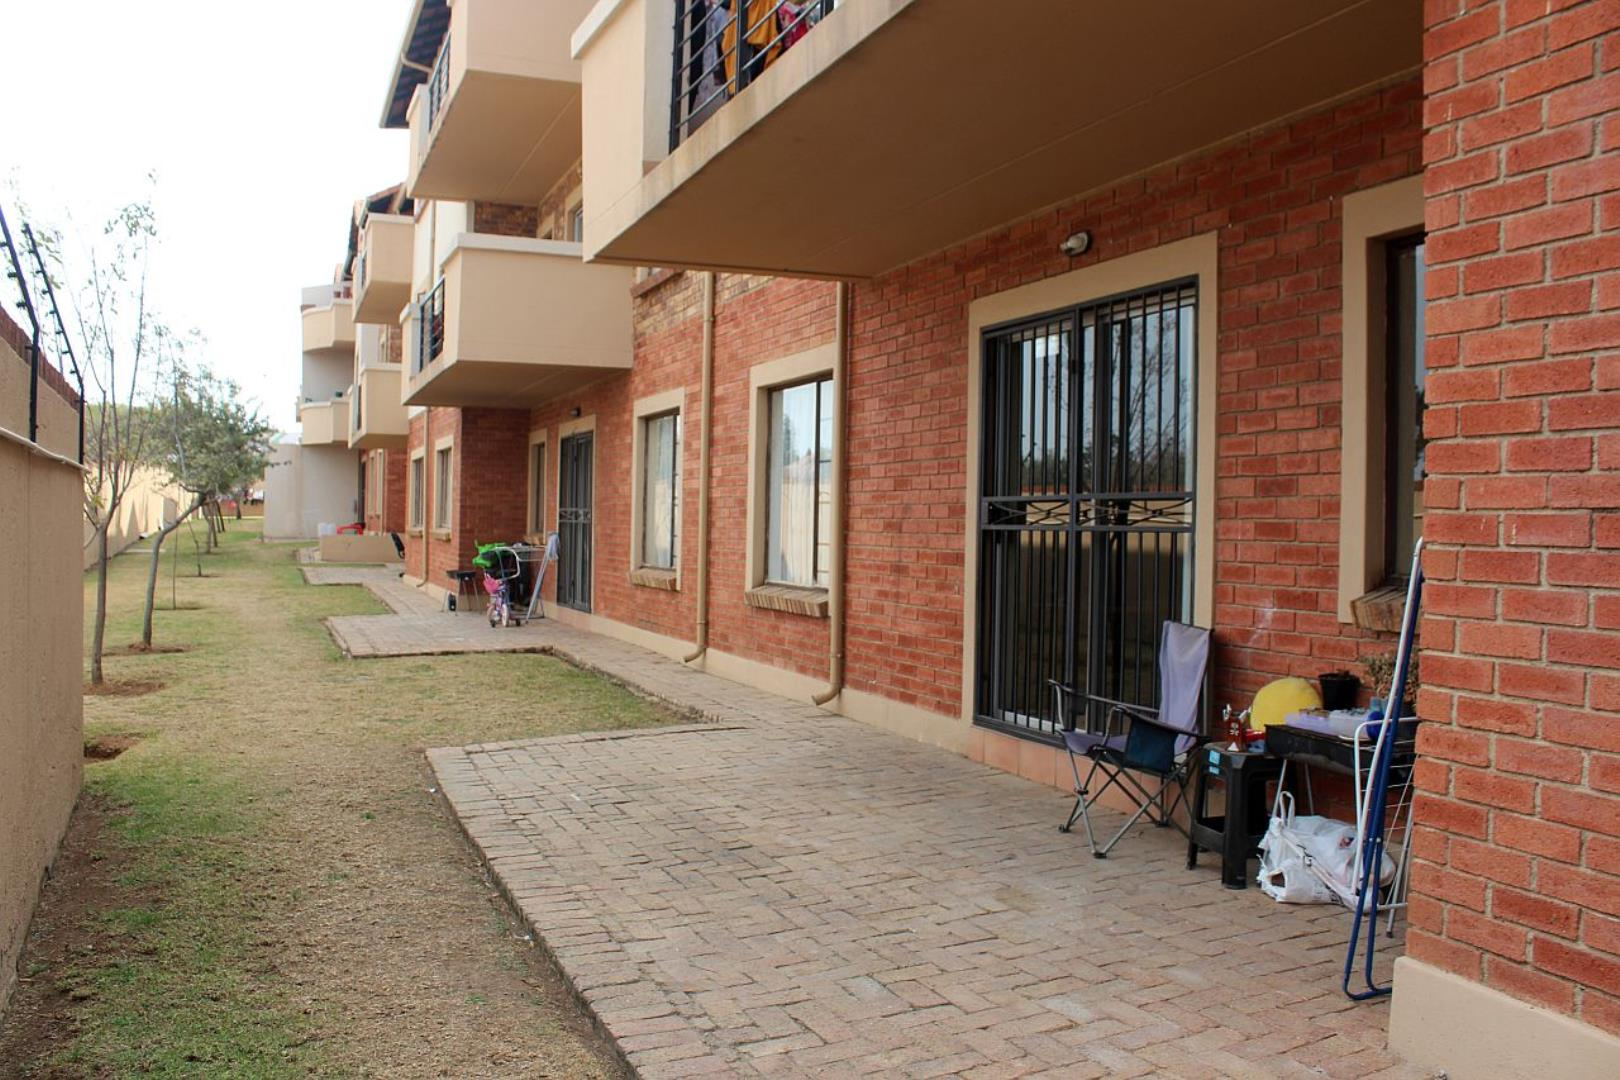 3 Bedroom  Apartment for Sale in Midrand - Gauteng